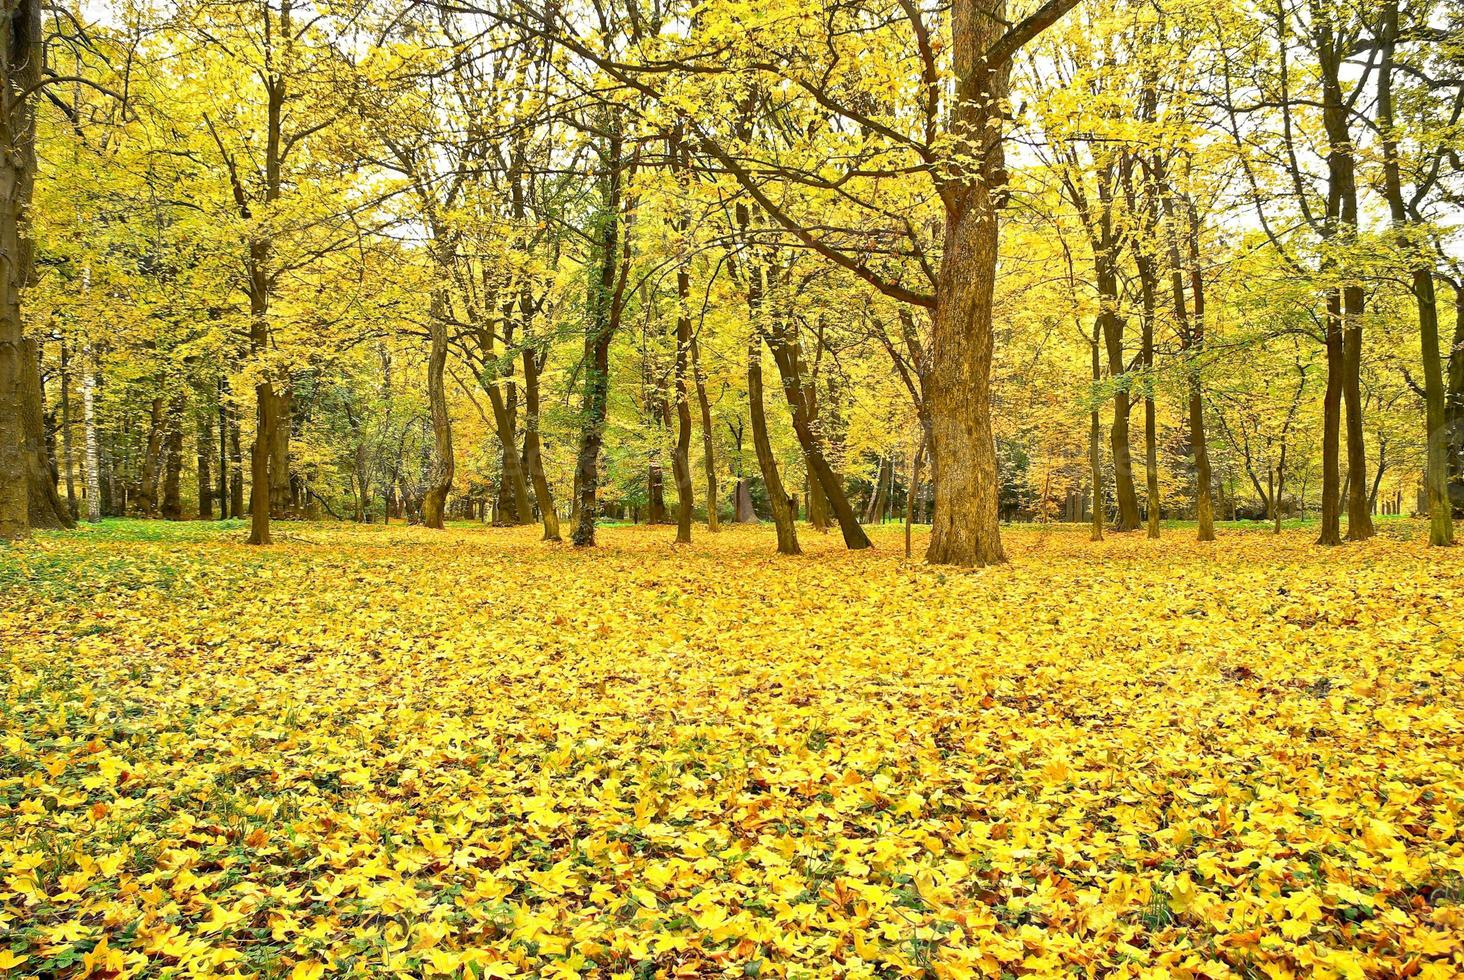 Yellowed leaves on the trees in the autumn forest. photo